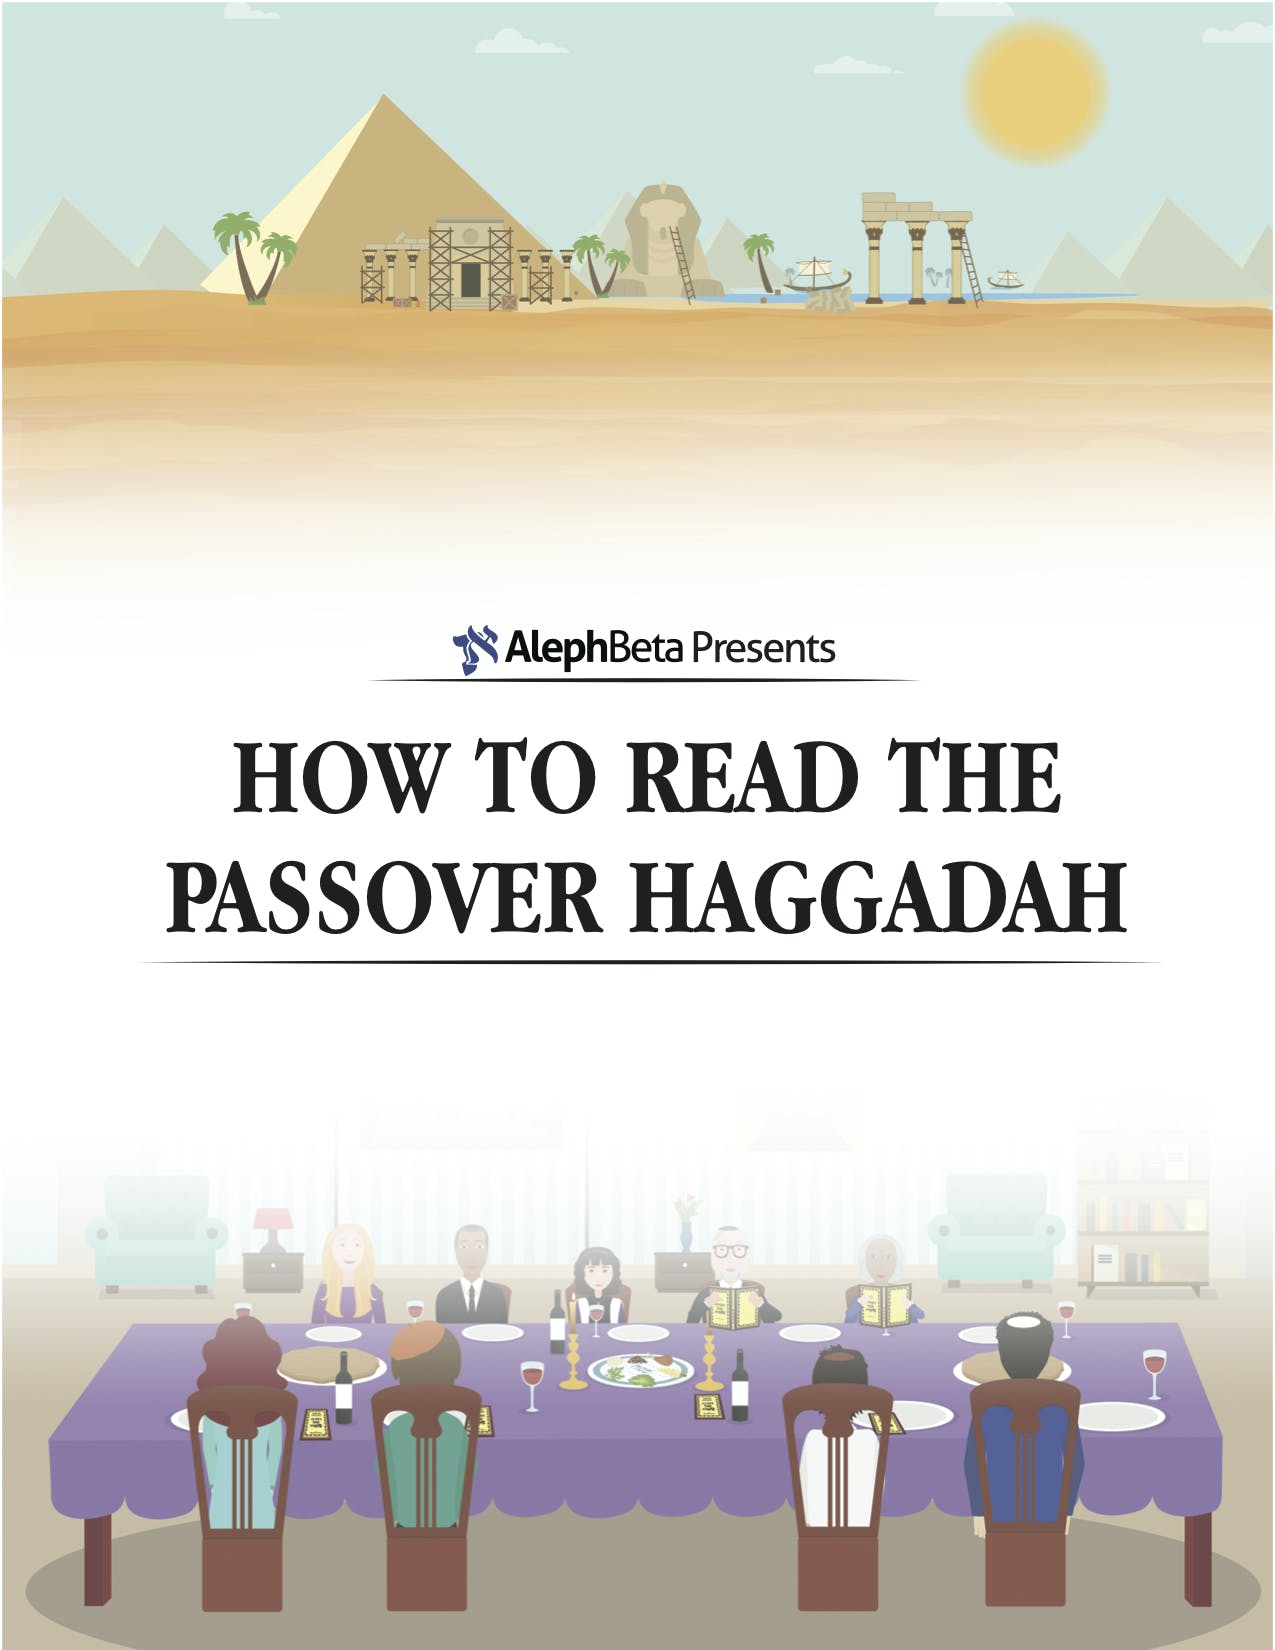 Downloadable passover guide